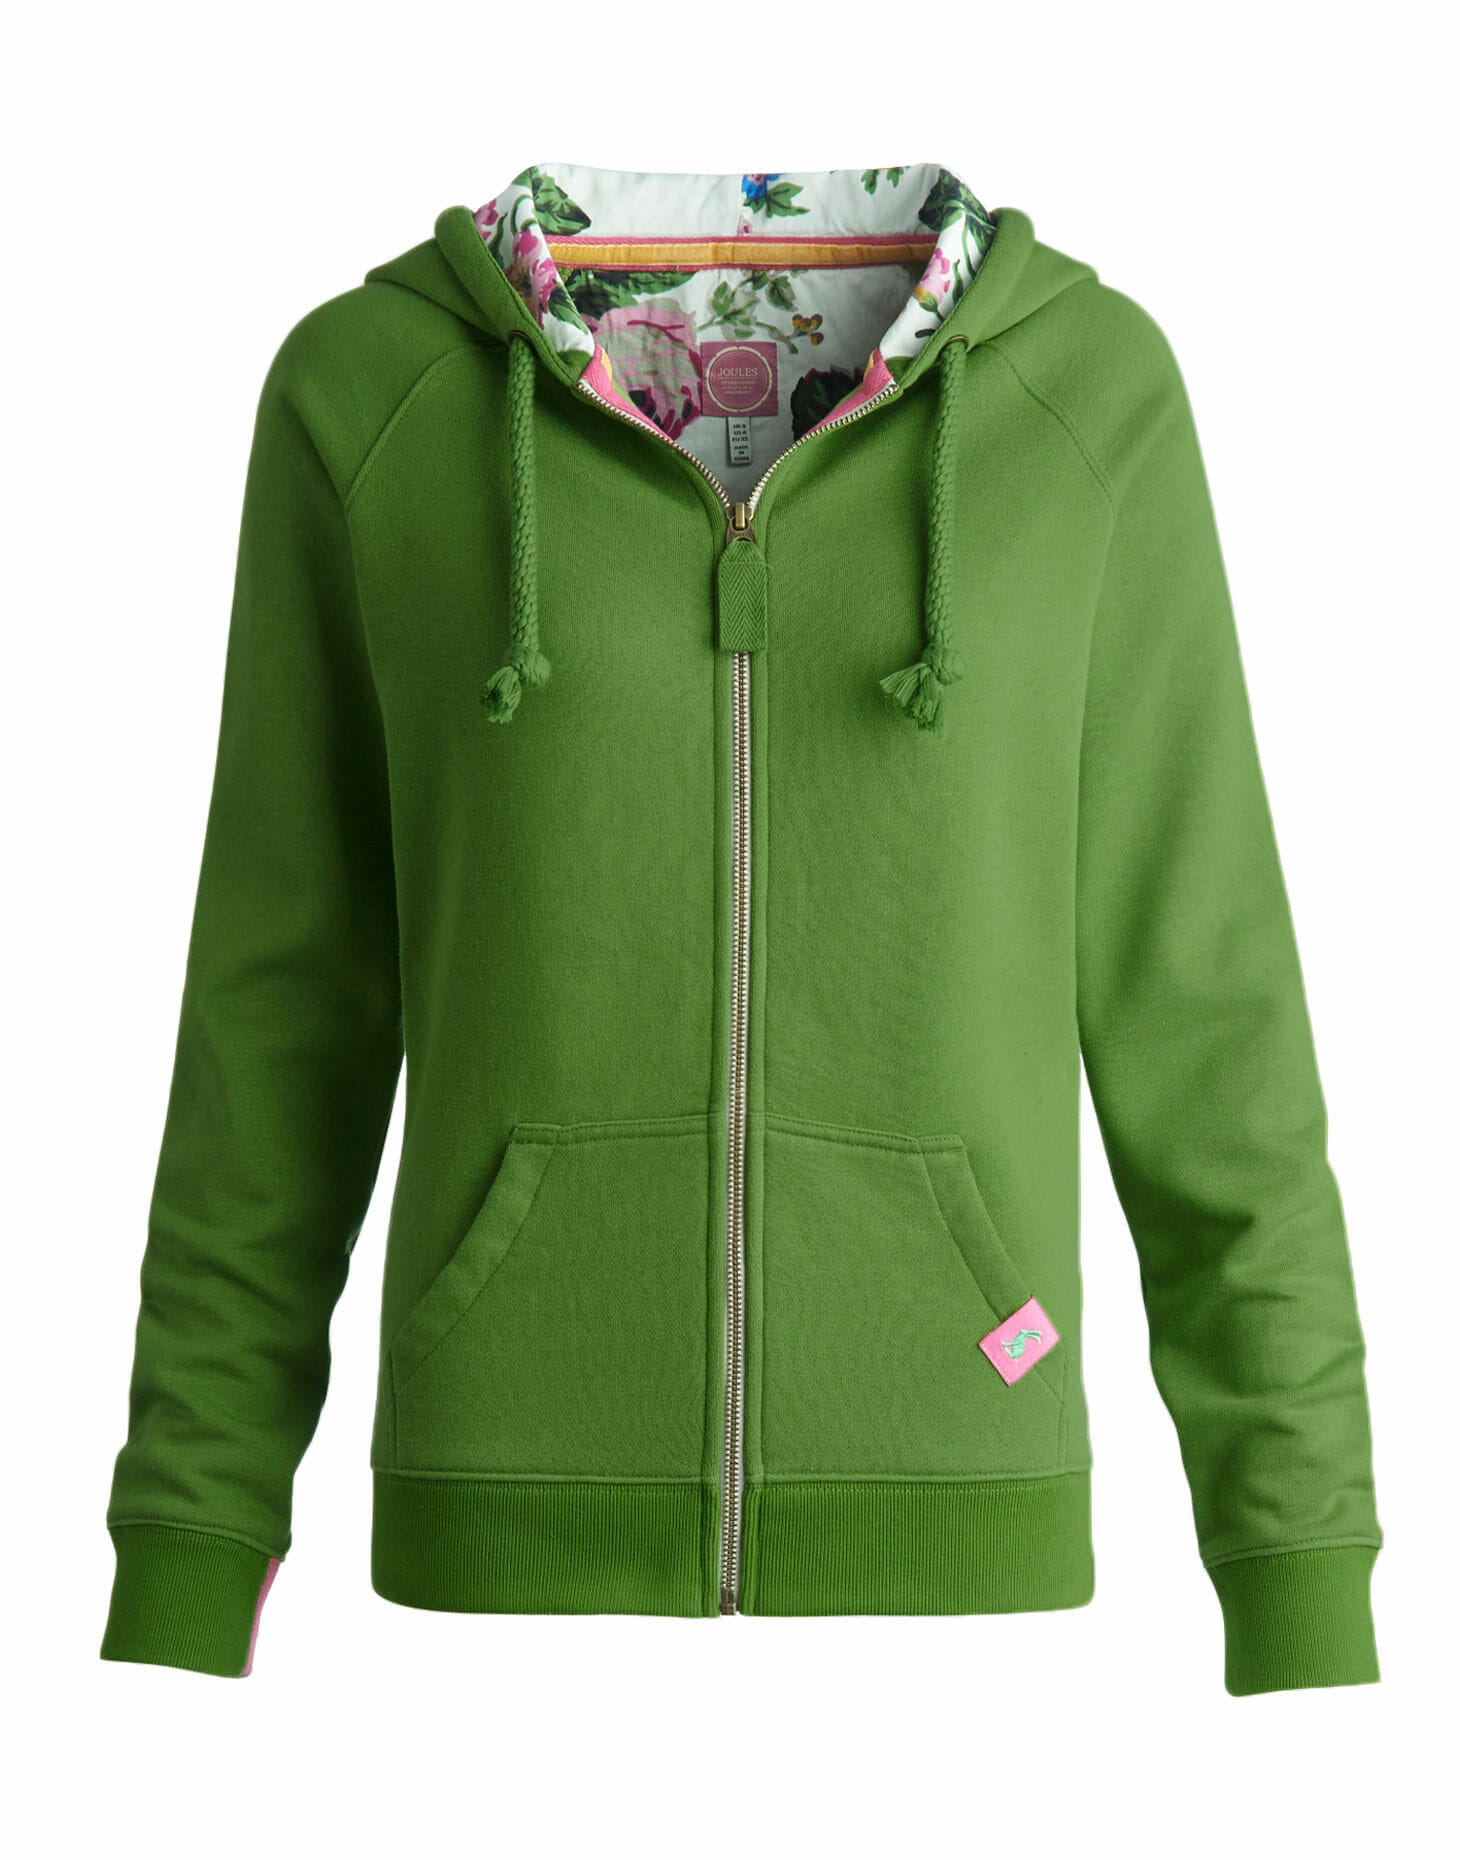 Find great deals on eBay for cheap hoodies. Shop with confidence.